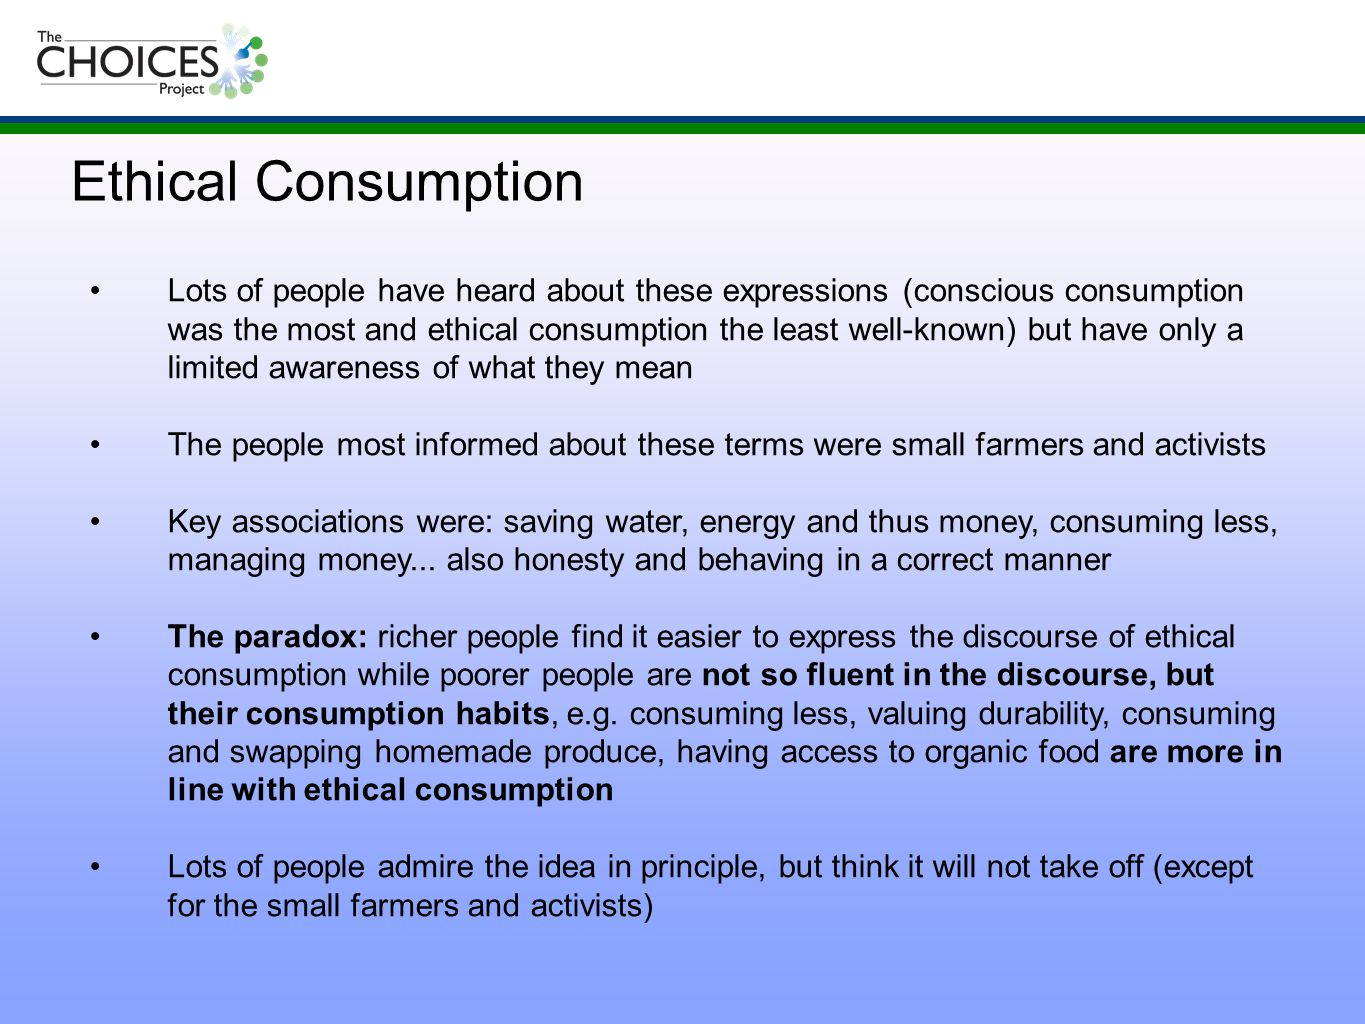 Lots of people have heard about these expressions (conscious consumption was the most and ethical consumption the least well-known) but have only a limited awareness of what they mean The people most informed about these terms were small farmers and activists Key associations were: saving water, energy and thus money, consuming less, managing money...